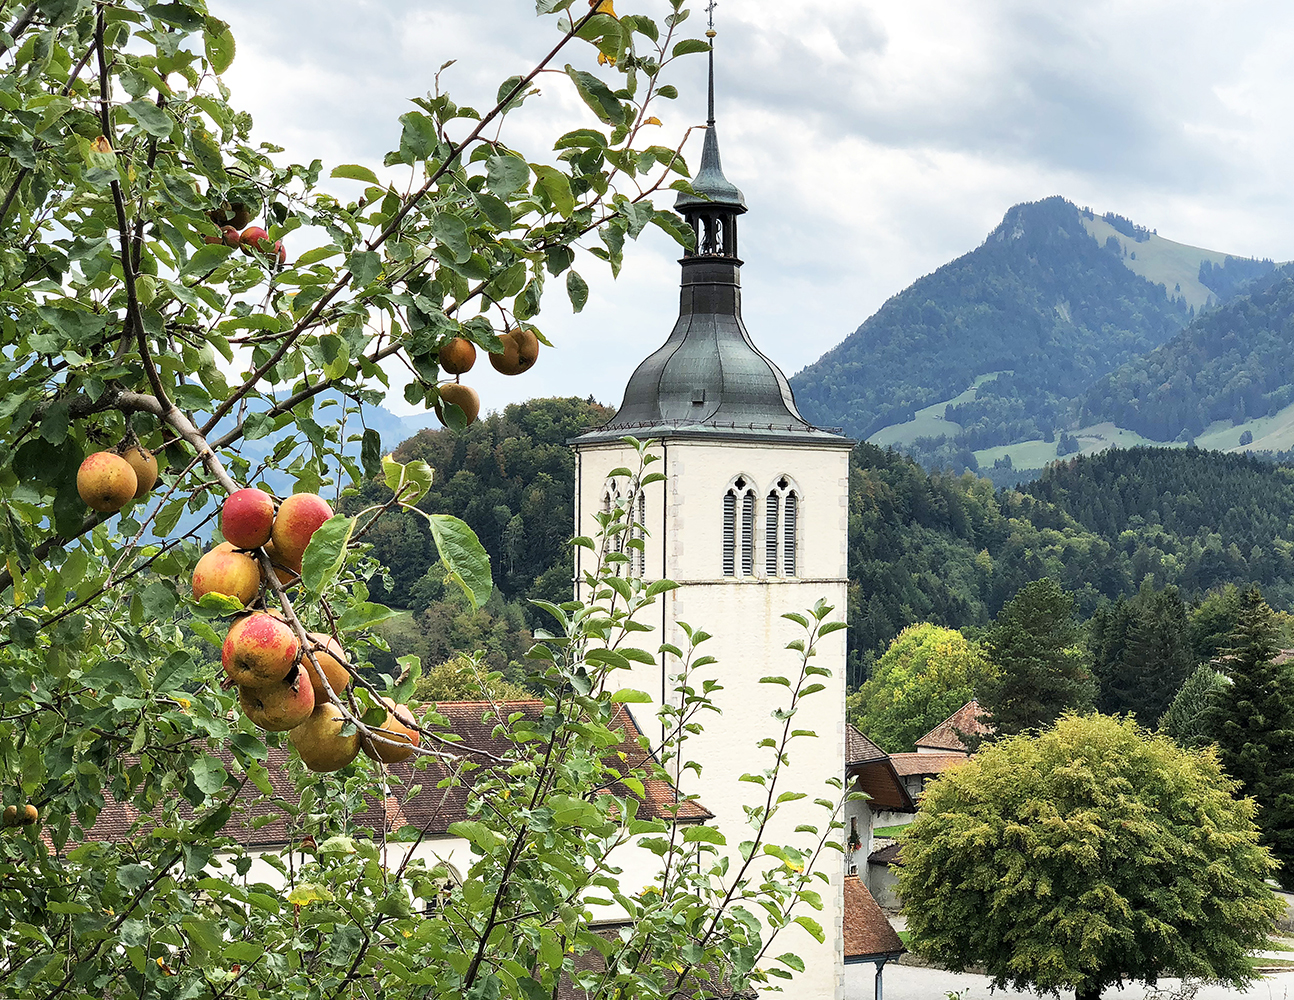 St. Theodul Church, Gruyères, Switzerland